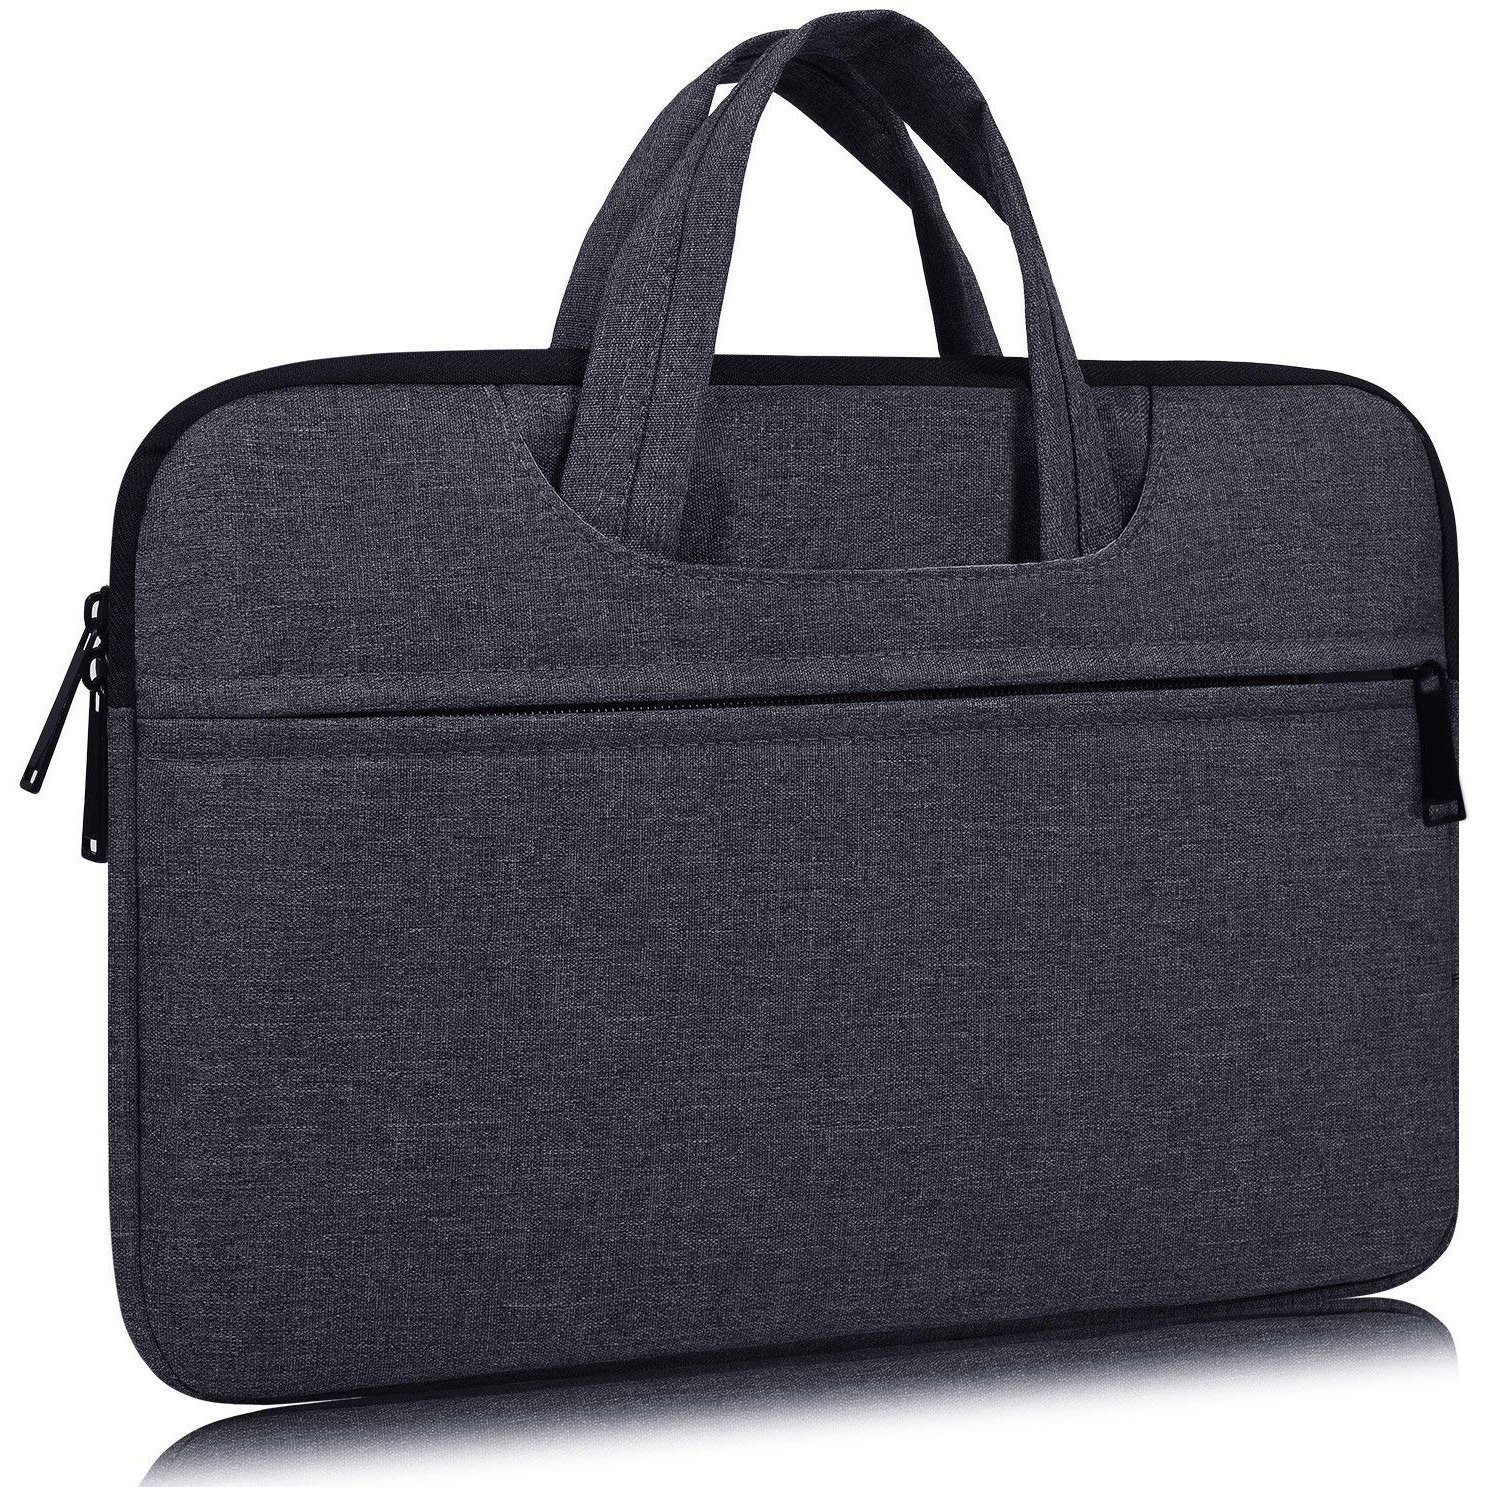 Image 3 - Laptop Bag Sleeve 13 13.3 14 14.1 15 15.4 15.6 Inch Notebook Bag For Macbook Air Pro 13 15 Dell Asus HP Acer Briefcase Handbag-in Laptop Bags & Cases from Computer & Office